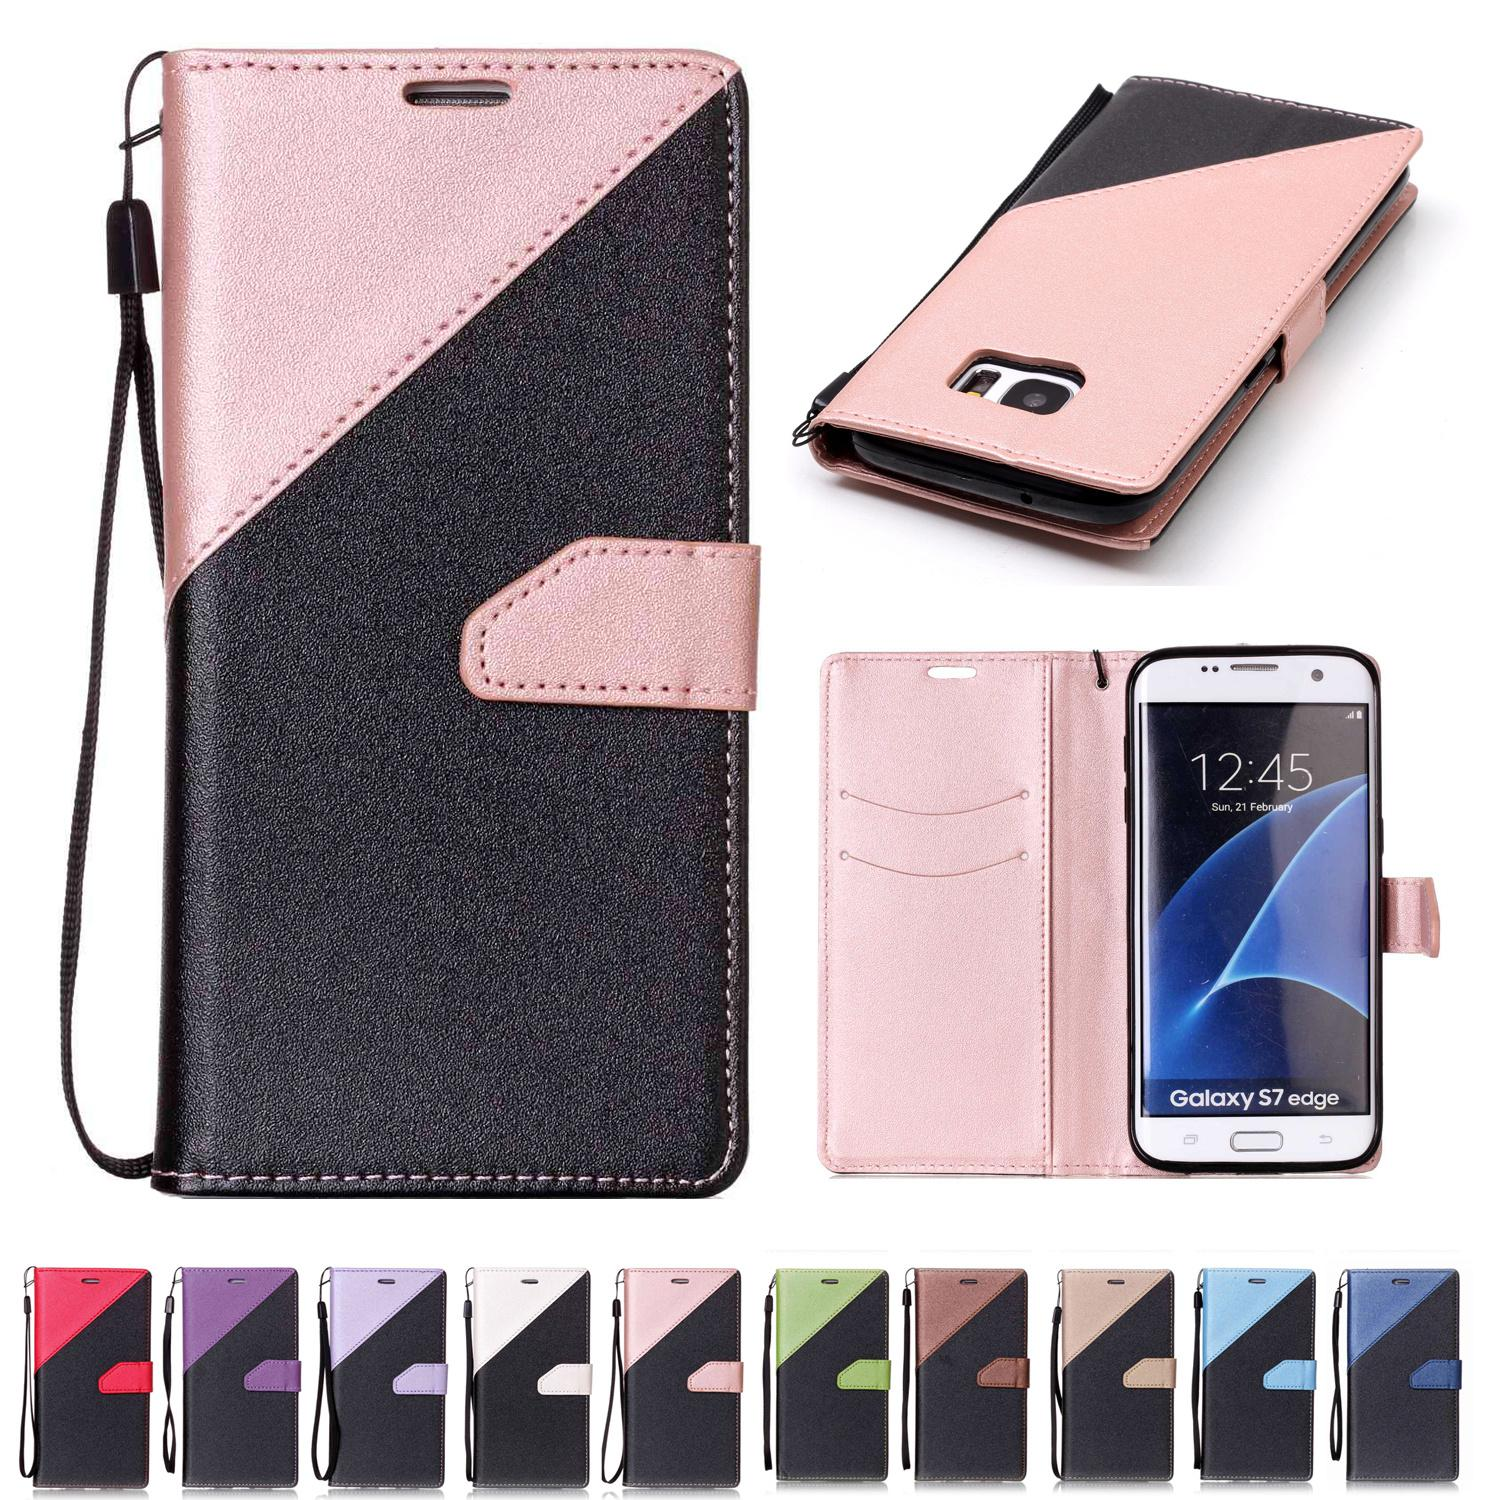 brand new f5784 d8427 For Samsung Galaxy S7 Edge Wallets Cases Thick PU Leather Case with Card  Slot Hand Strap Sand Beach Surface Design